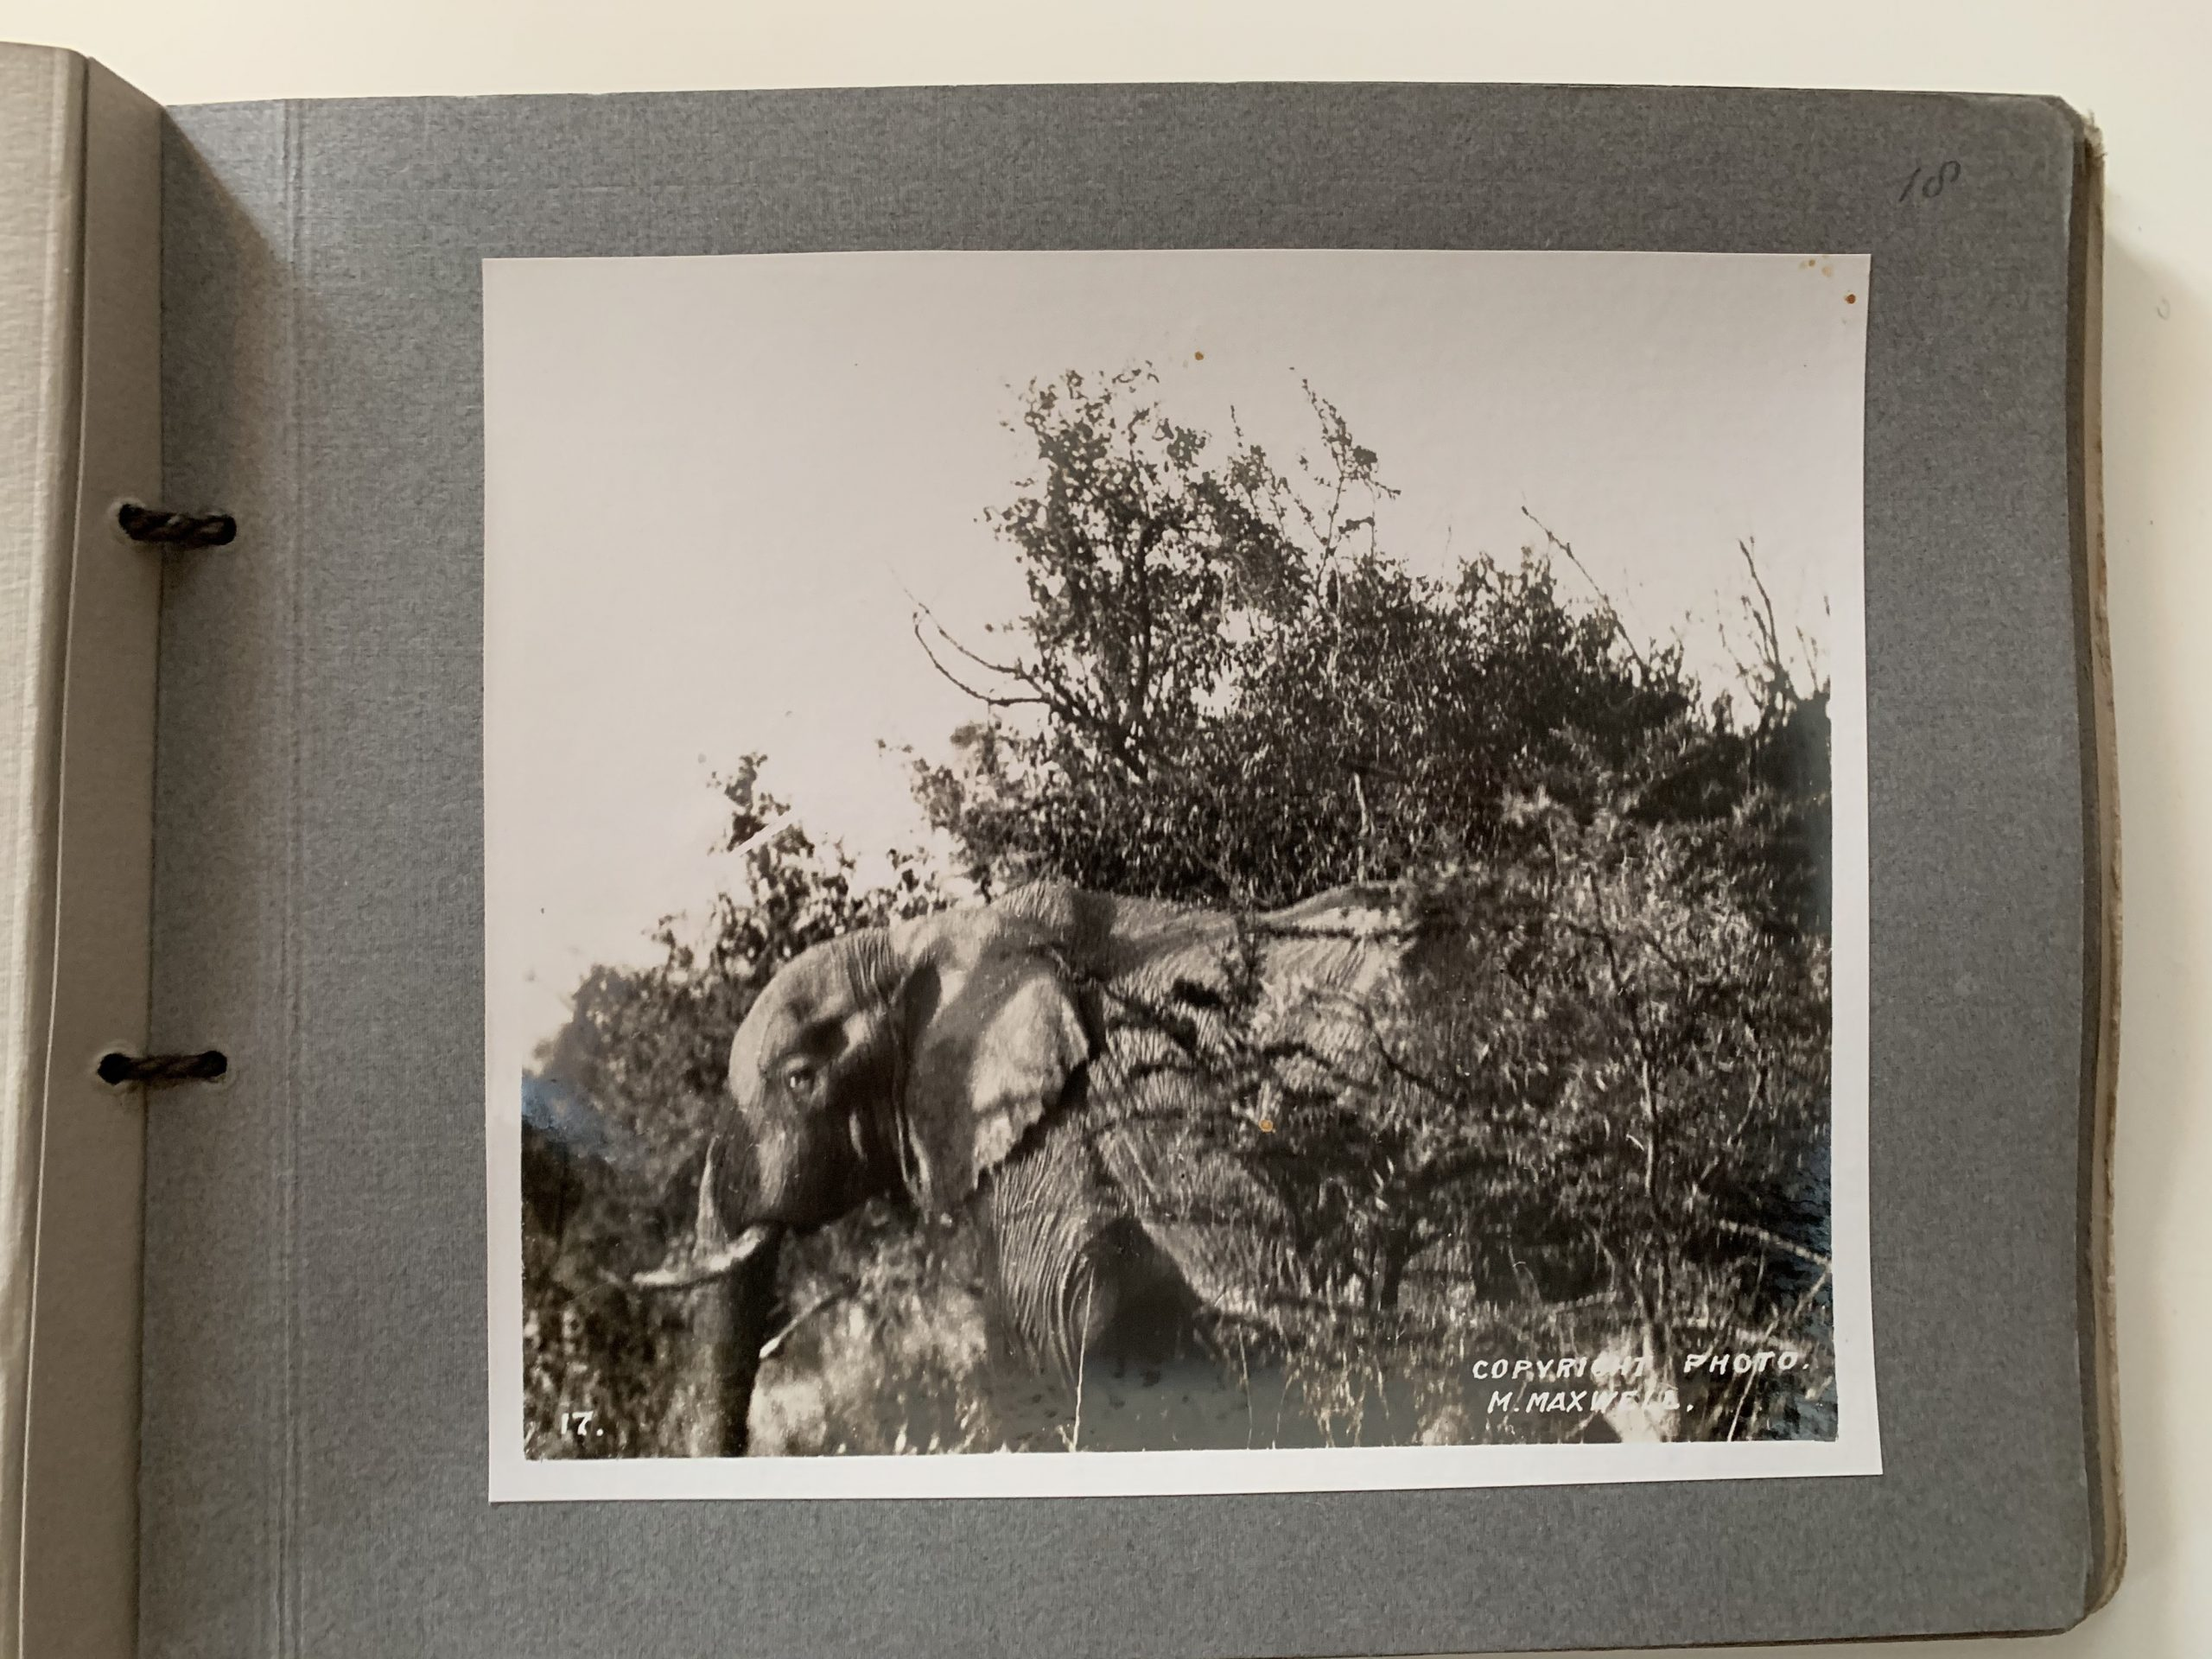 Photographic Album of Africa